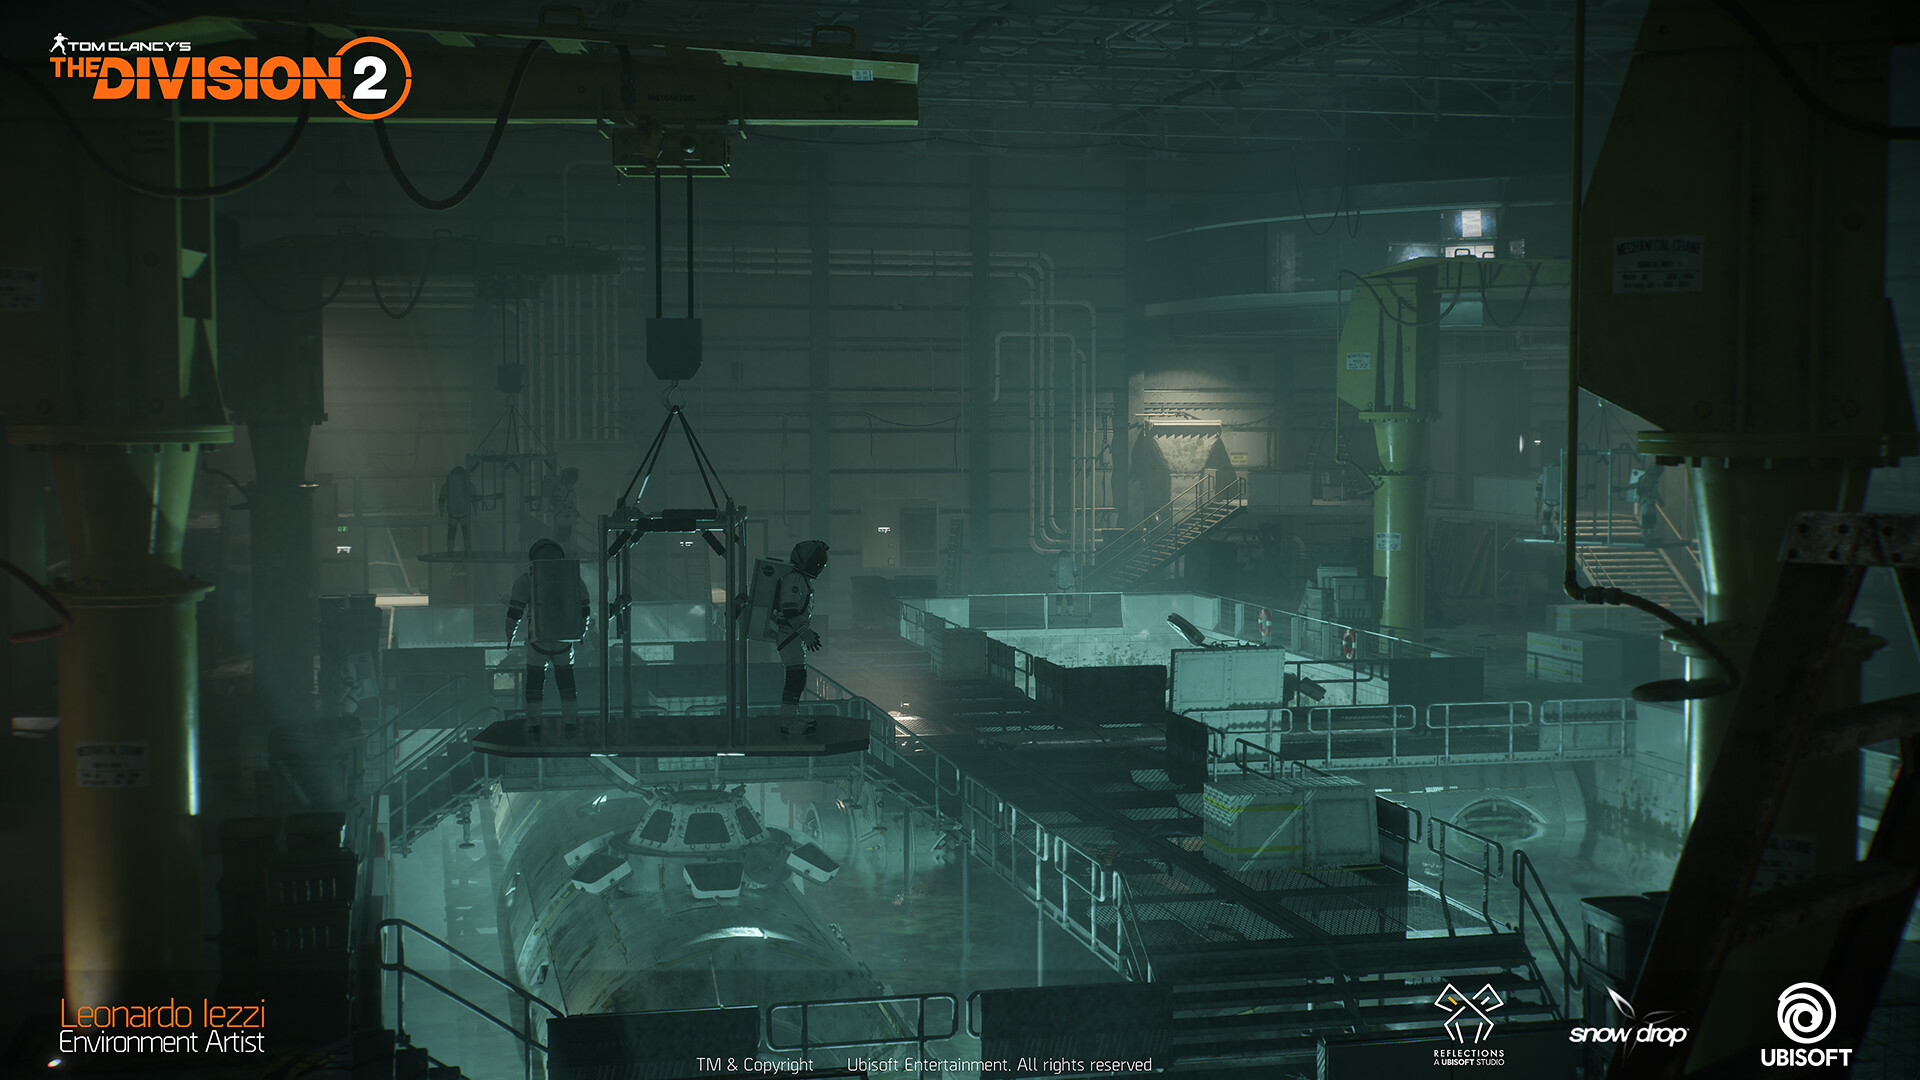 Leonardo iezzi leonardo iezzi the division 2 environment art 06 buoyancy 001